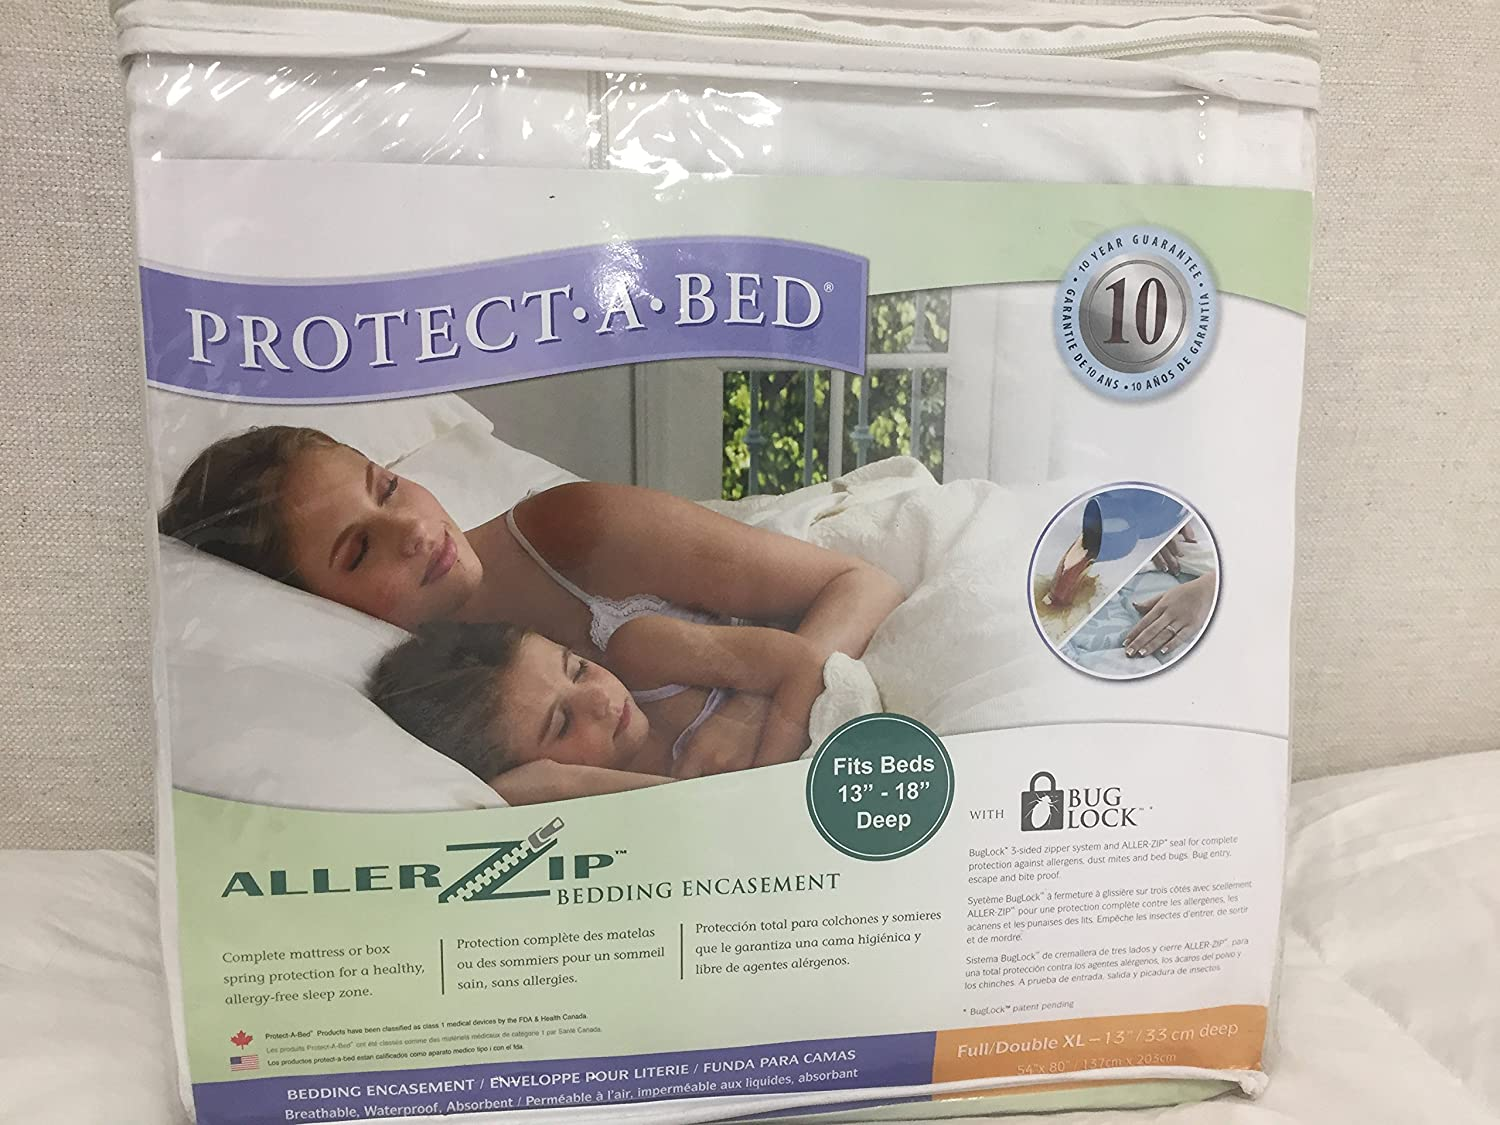 Amazon.com: Protect-A-Bed Allerzip Mattress Encasement, Full/Double XL-13: 54